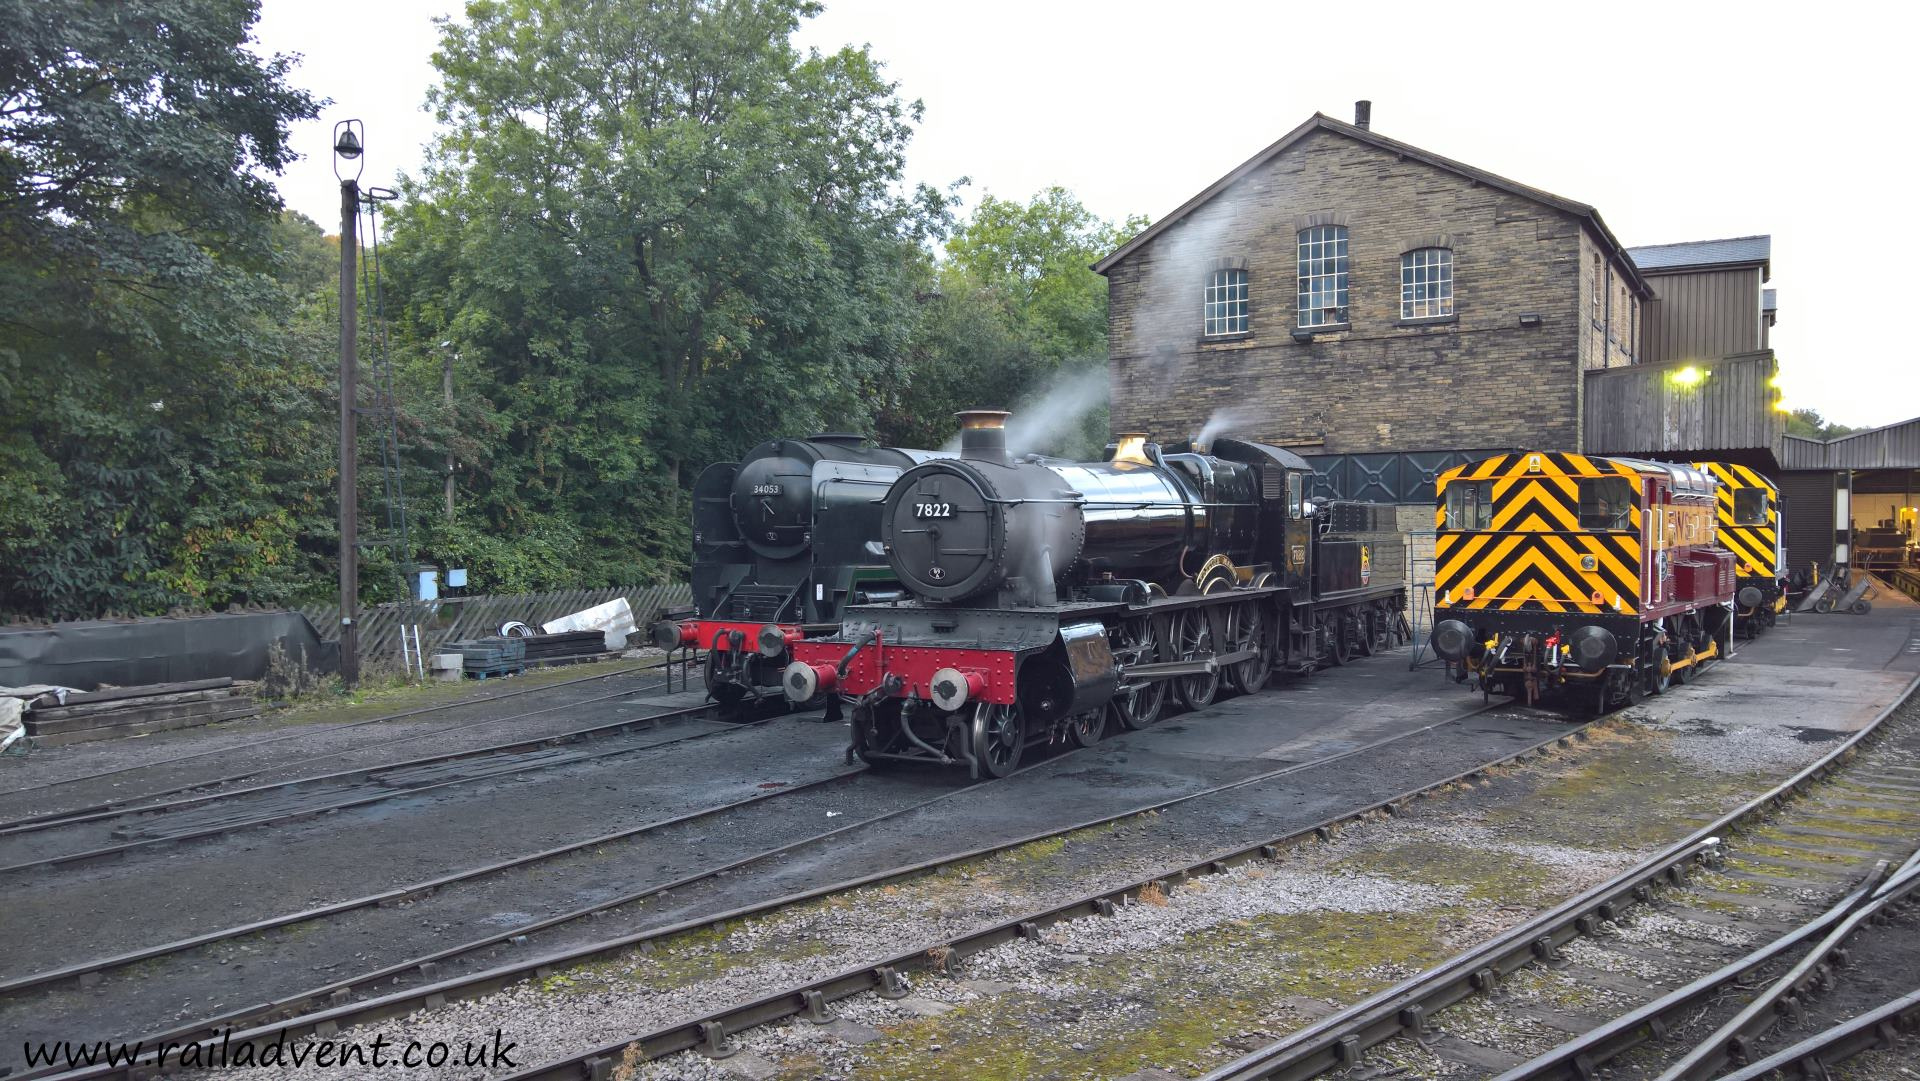 No. 7822 Foxcote Manor and 34053 Sir Keith Park stand at Haworth Sheds on the Keighley & Worth Valley Railway at the Autumn Steam Gala